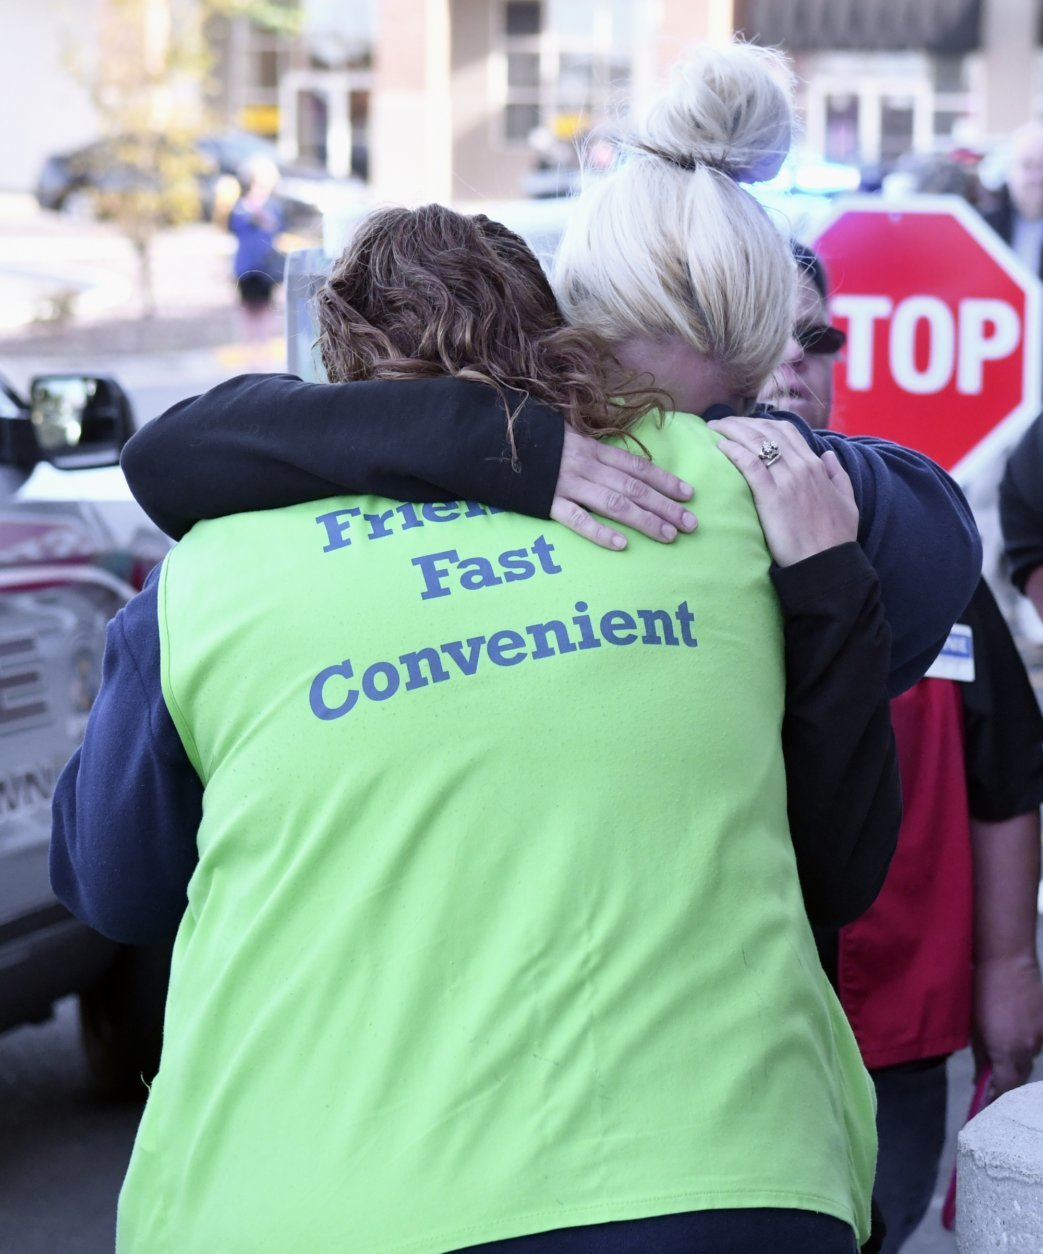 Kroger employees hug each other in the aftermath of shooting that left two people dead and a suspect in custody, Wednesday, Oct. 24, 2018, in Jeffersontown, Ky. A man fatally shot another man inside a Kroger grocery store, shot and killed a woman in the parking lot, and then exchanged fire with an armed bystander who intervened before he fled the scene on the outskirts of Louisville, Kentucky, on Wednesday, police said. He was captured shortly afterward. (AP Photo/Timothy D. Easley)